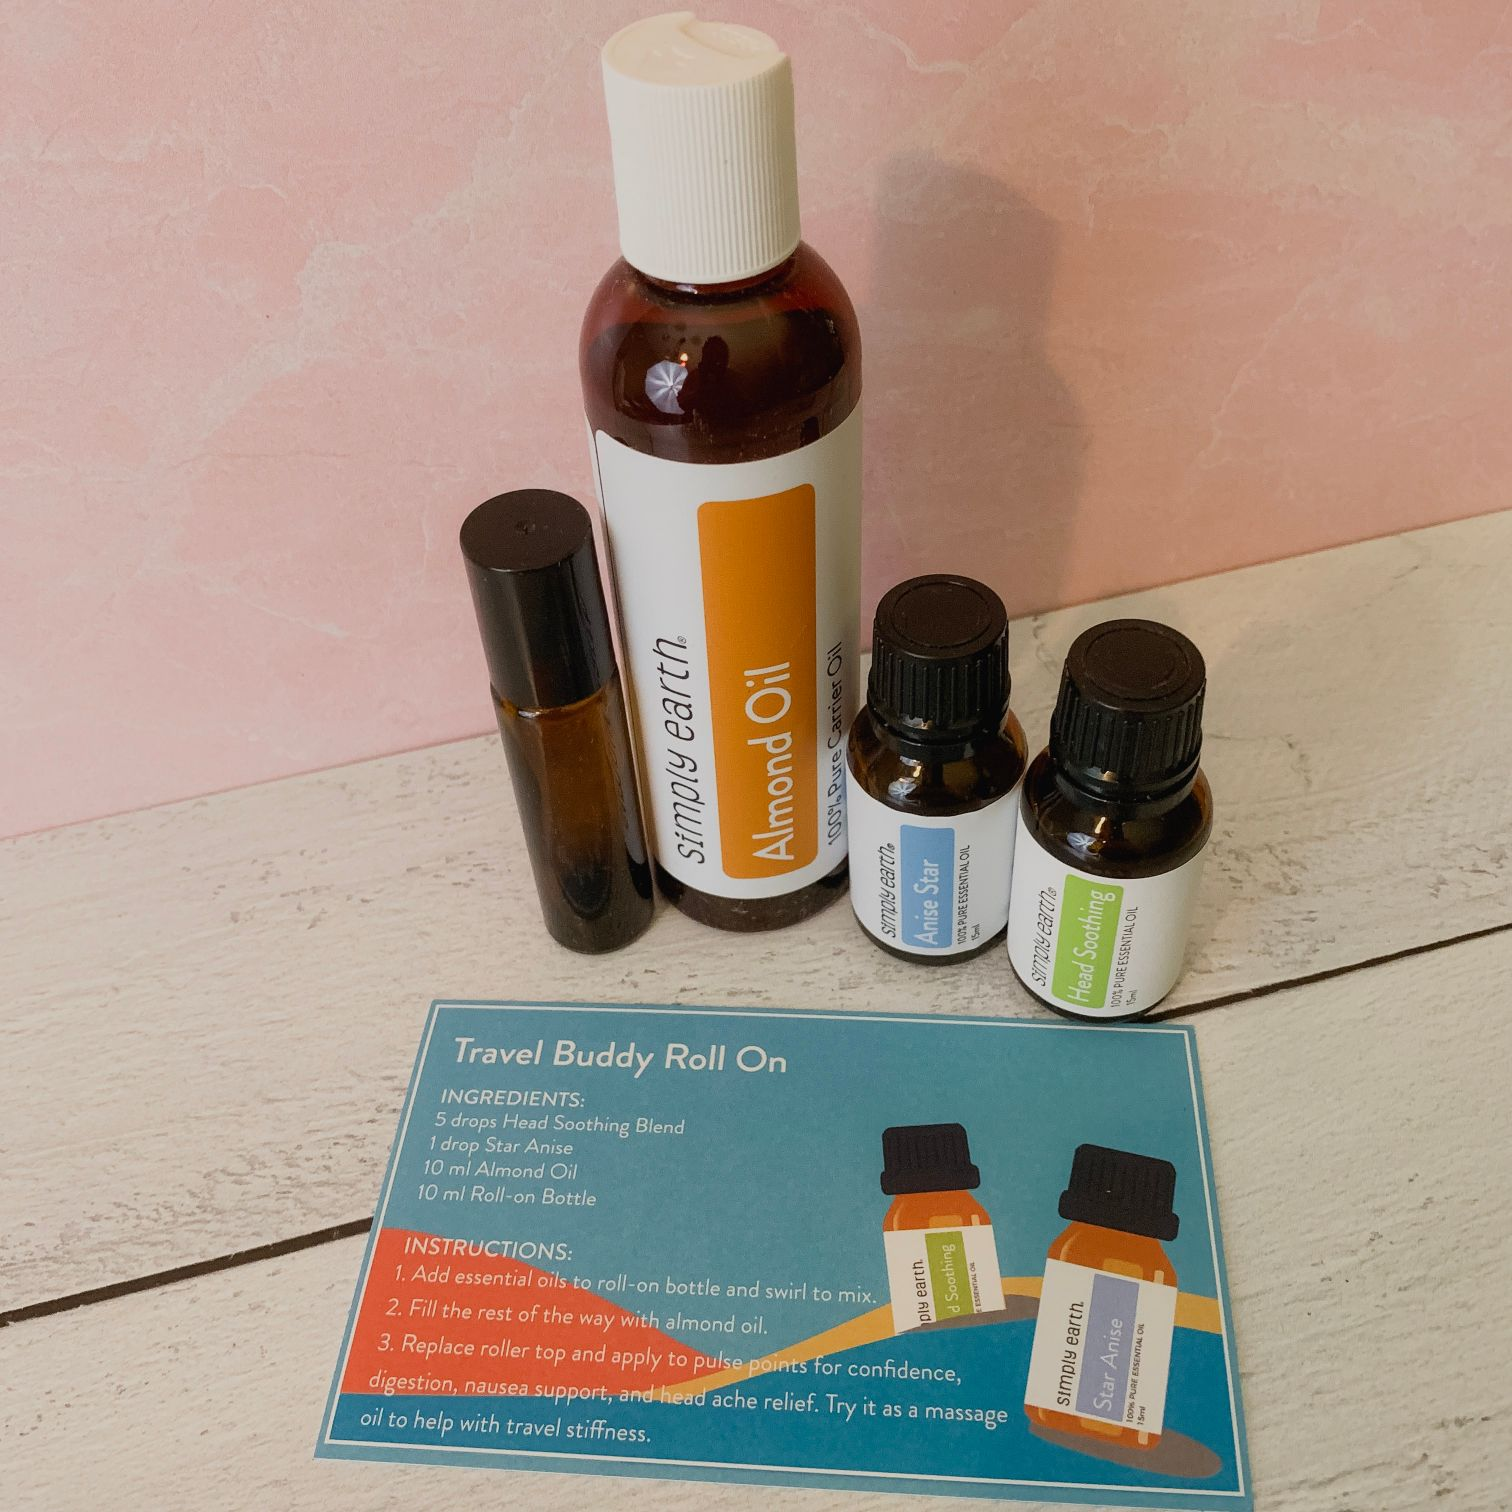 #Affiliate: Finding The Perfect Summer Essential Oils With Simply Earth   Essential oils are great any time of year. Do you want to know the best essential oils for summer? Read my post with Simply Earth for everything you need for a perfect summer and a home that's natural and smells delightful. #EssentialOils #FromSimplyEarth